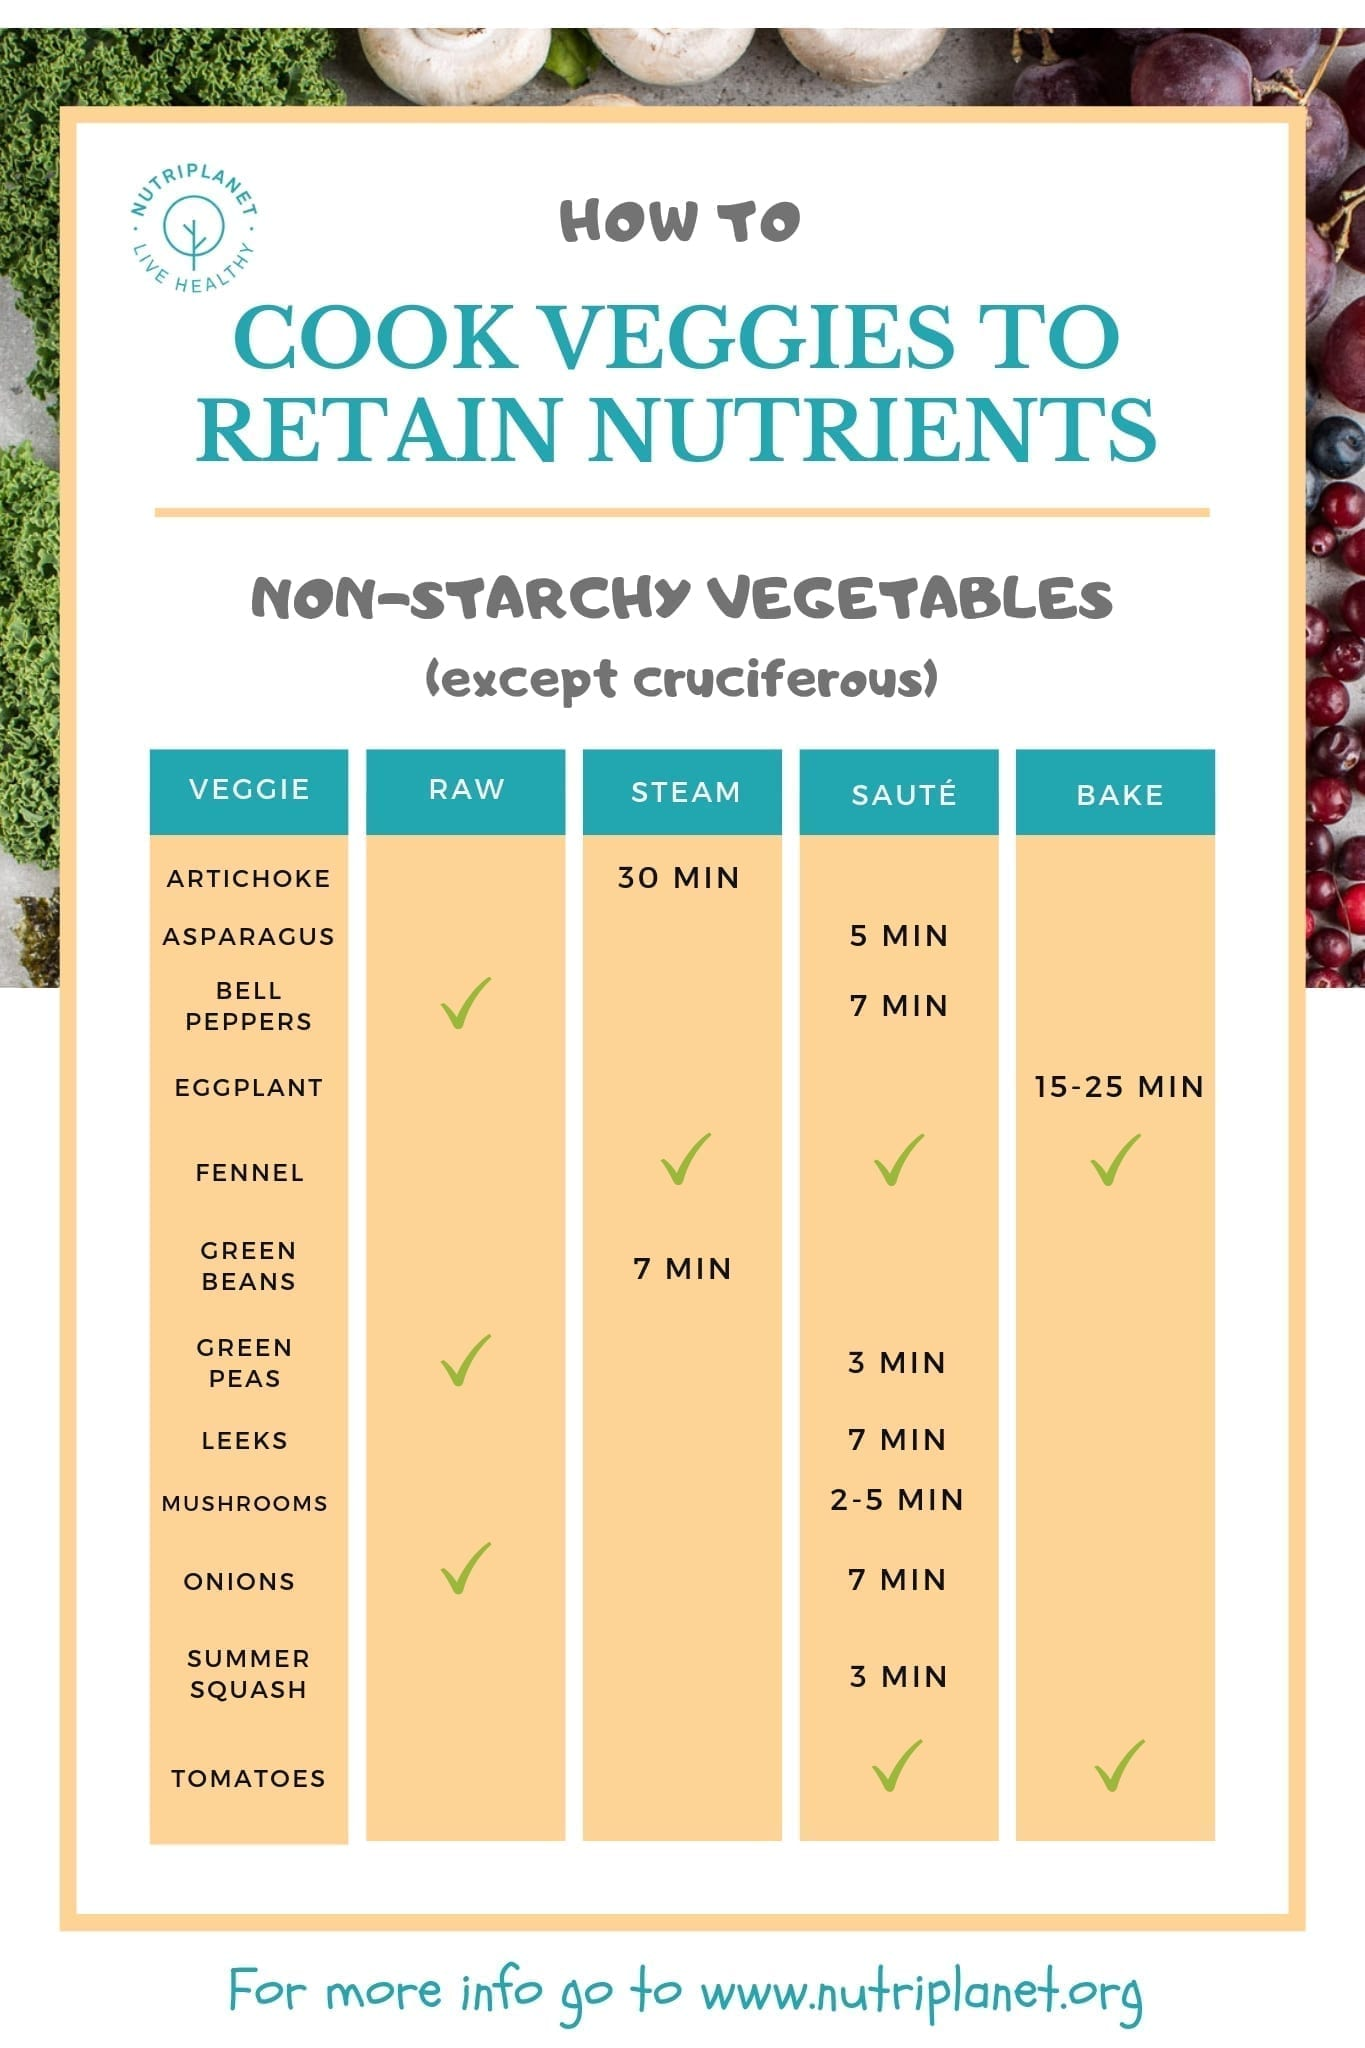 How to Cook Vegetables to Retain Nutrients and Maximise Health Benefits